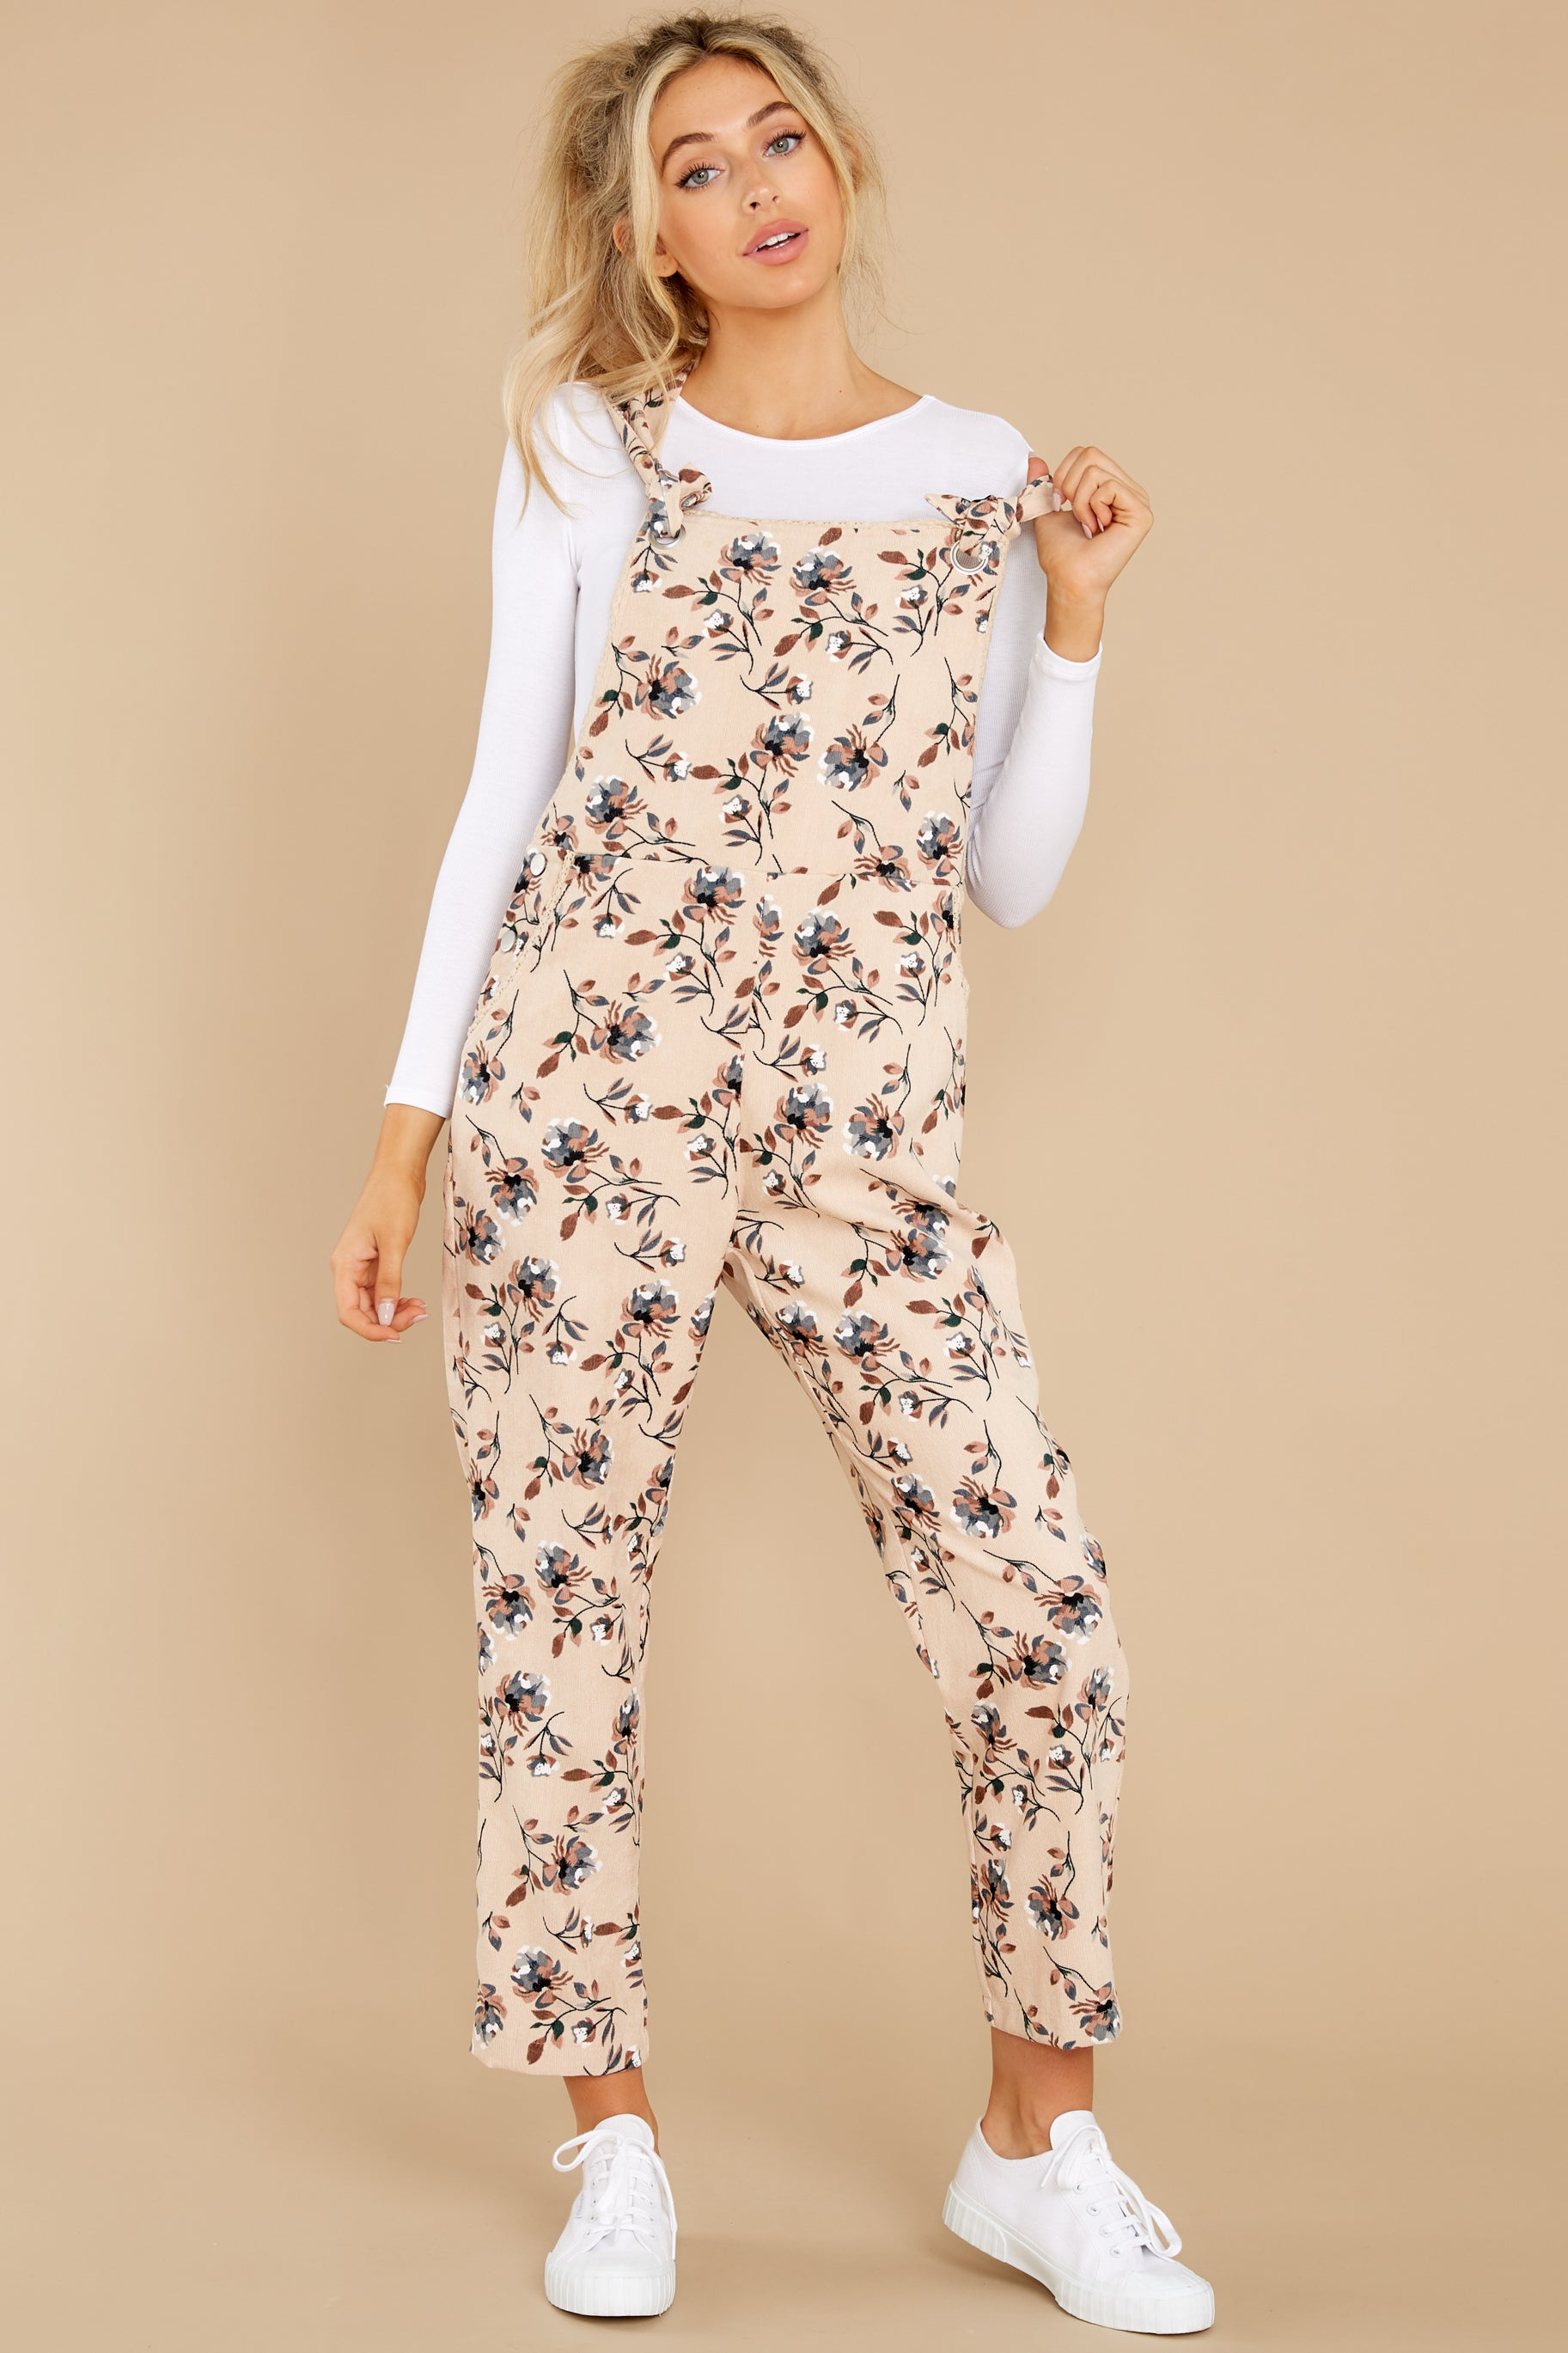 1980s Clothing, Fashion   80s Style Clothes Its All Peachy Cream Floral Print Overalls Beige $58.00 AT vintagedancer.com